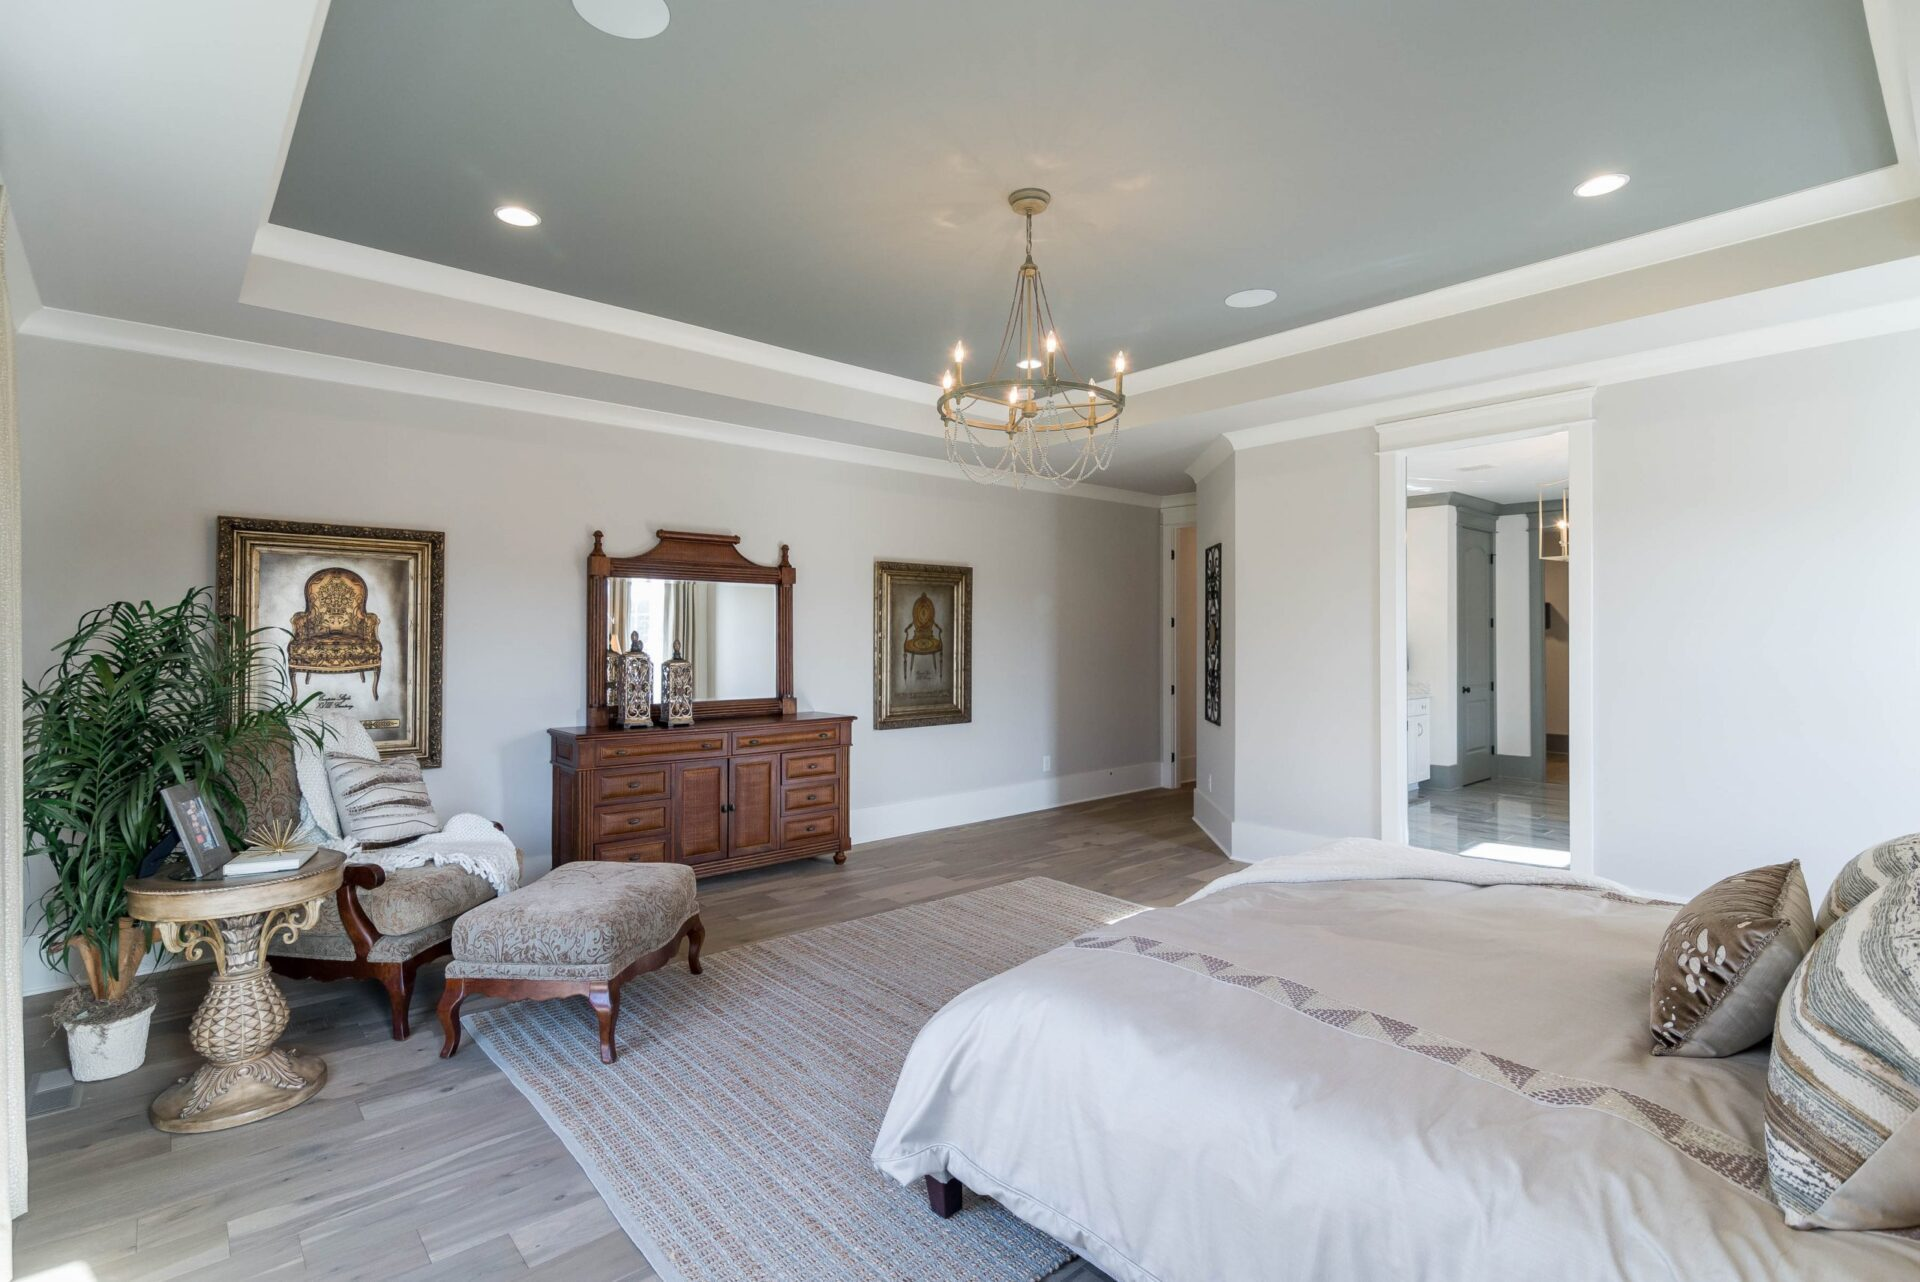 Bedroom and luxury dream home plans Nashville TN